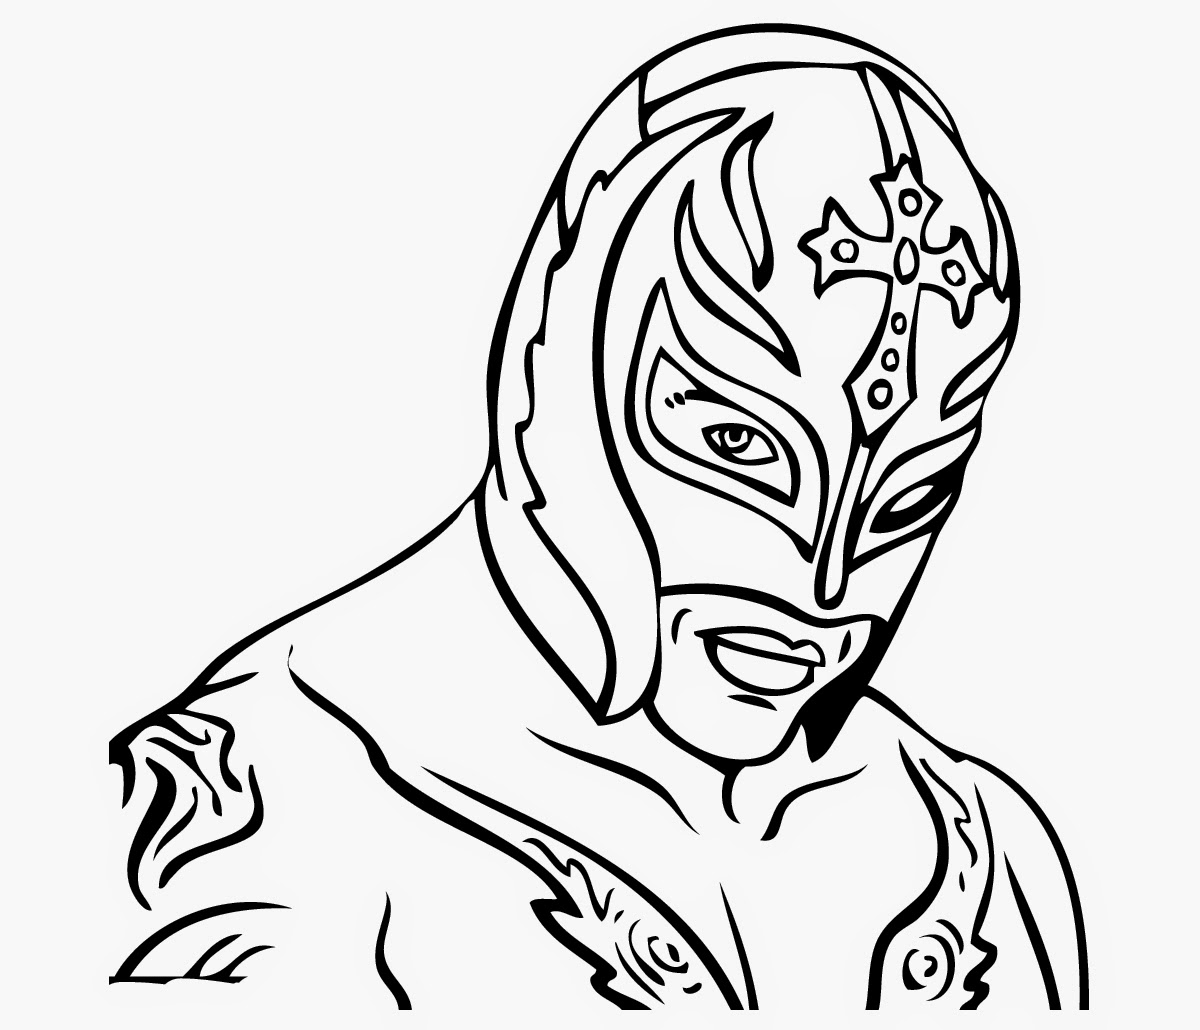 wwe color sheets world wrestling entertainment wwe coloring pages line drawing sheets wwe color